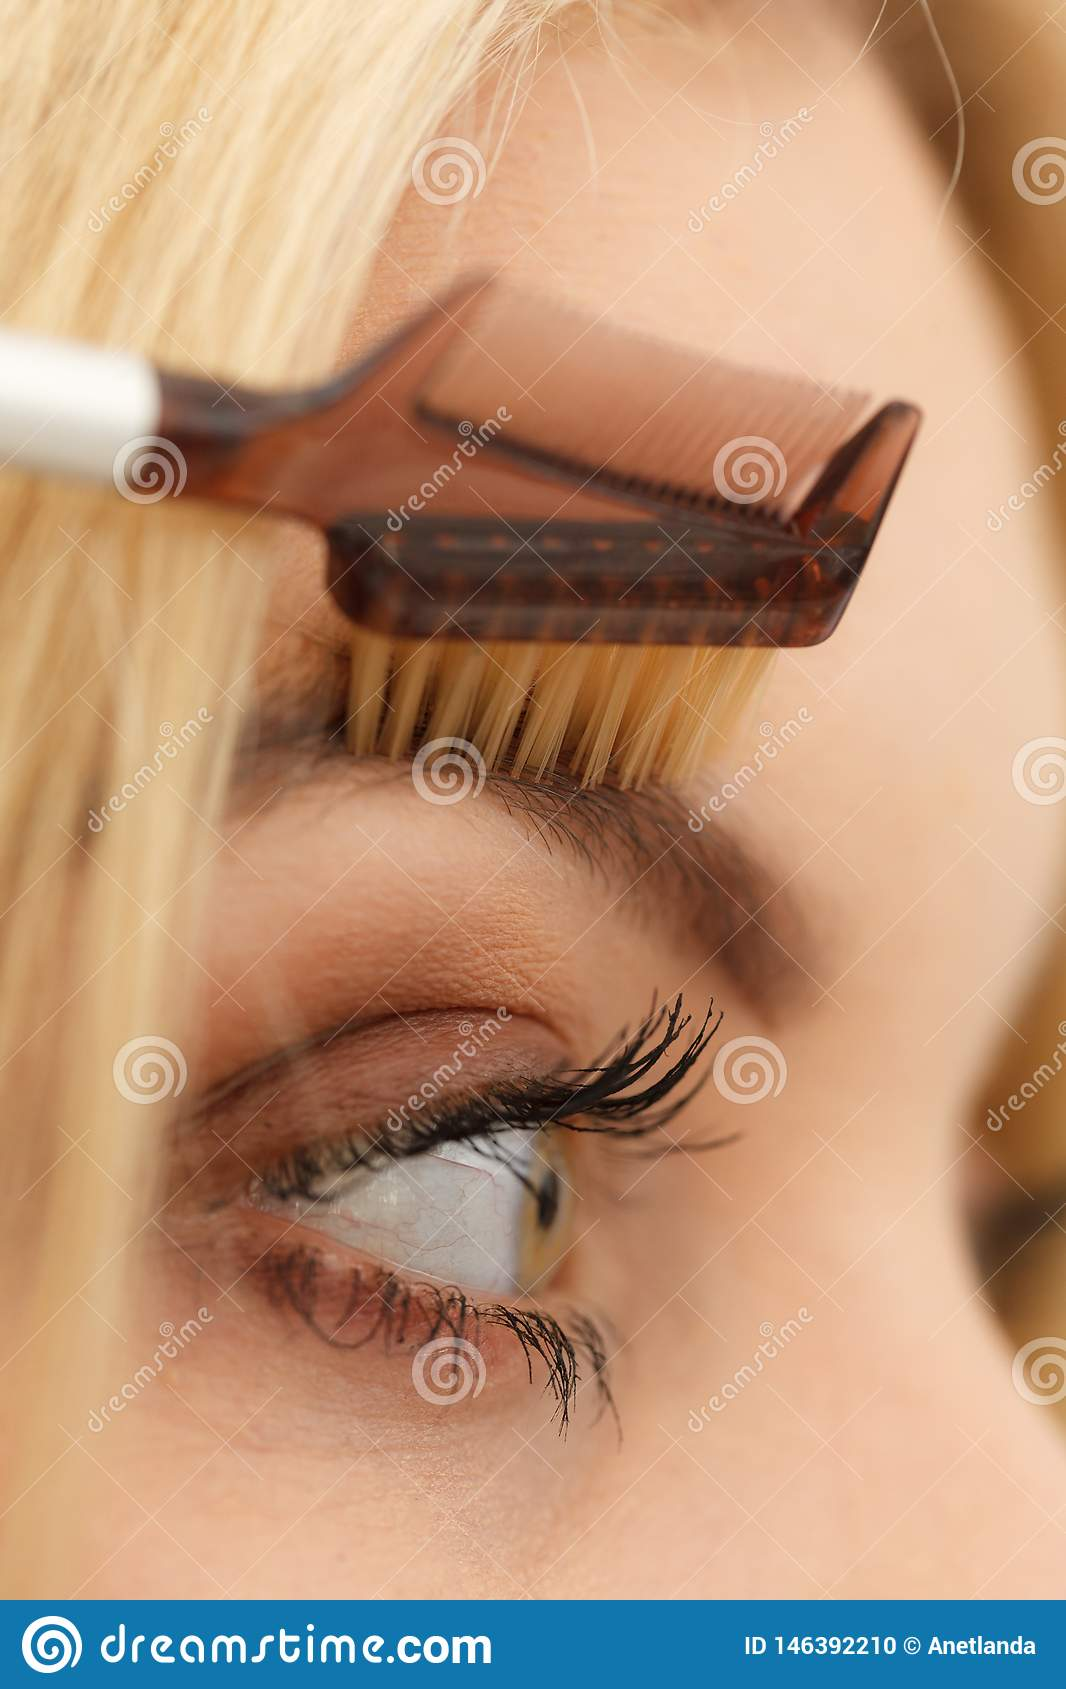 Woman Brushing Her Eyebrows Stock Photo - Image of young ...